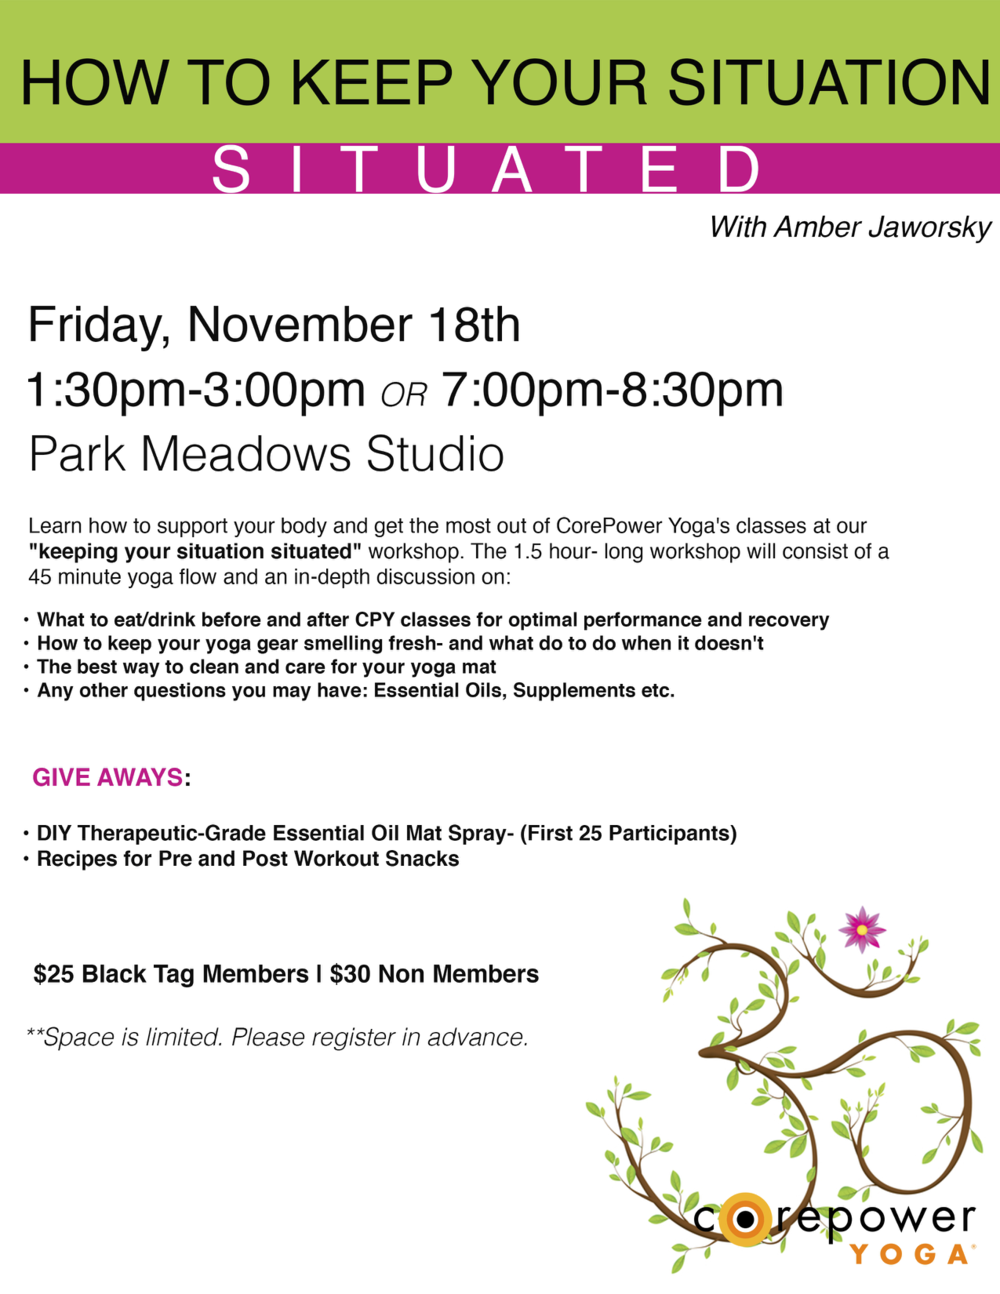 SpecialWorkshop_SituationSituated_Nov16.png